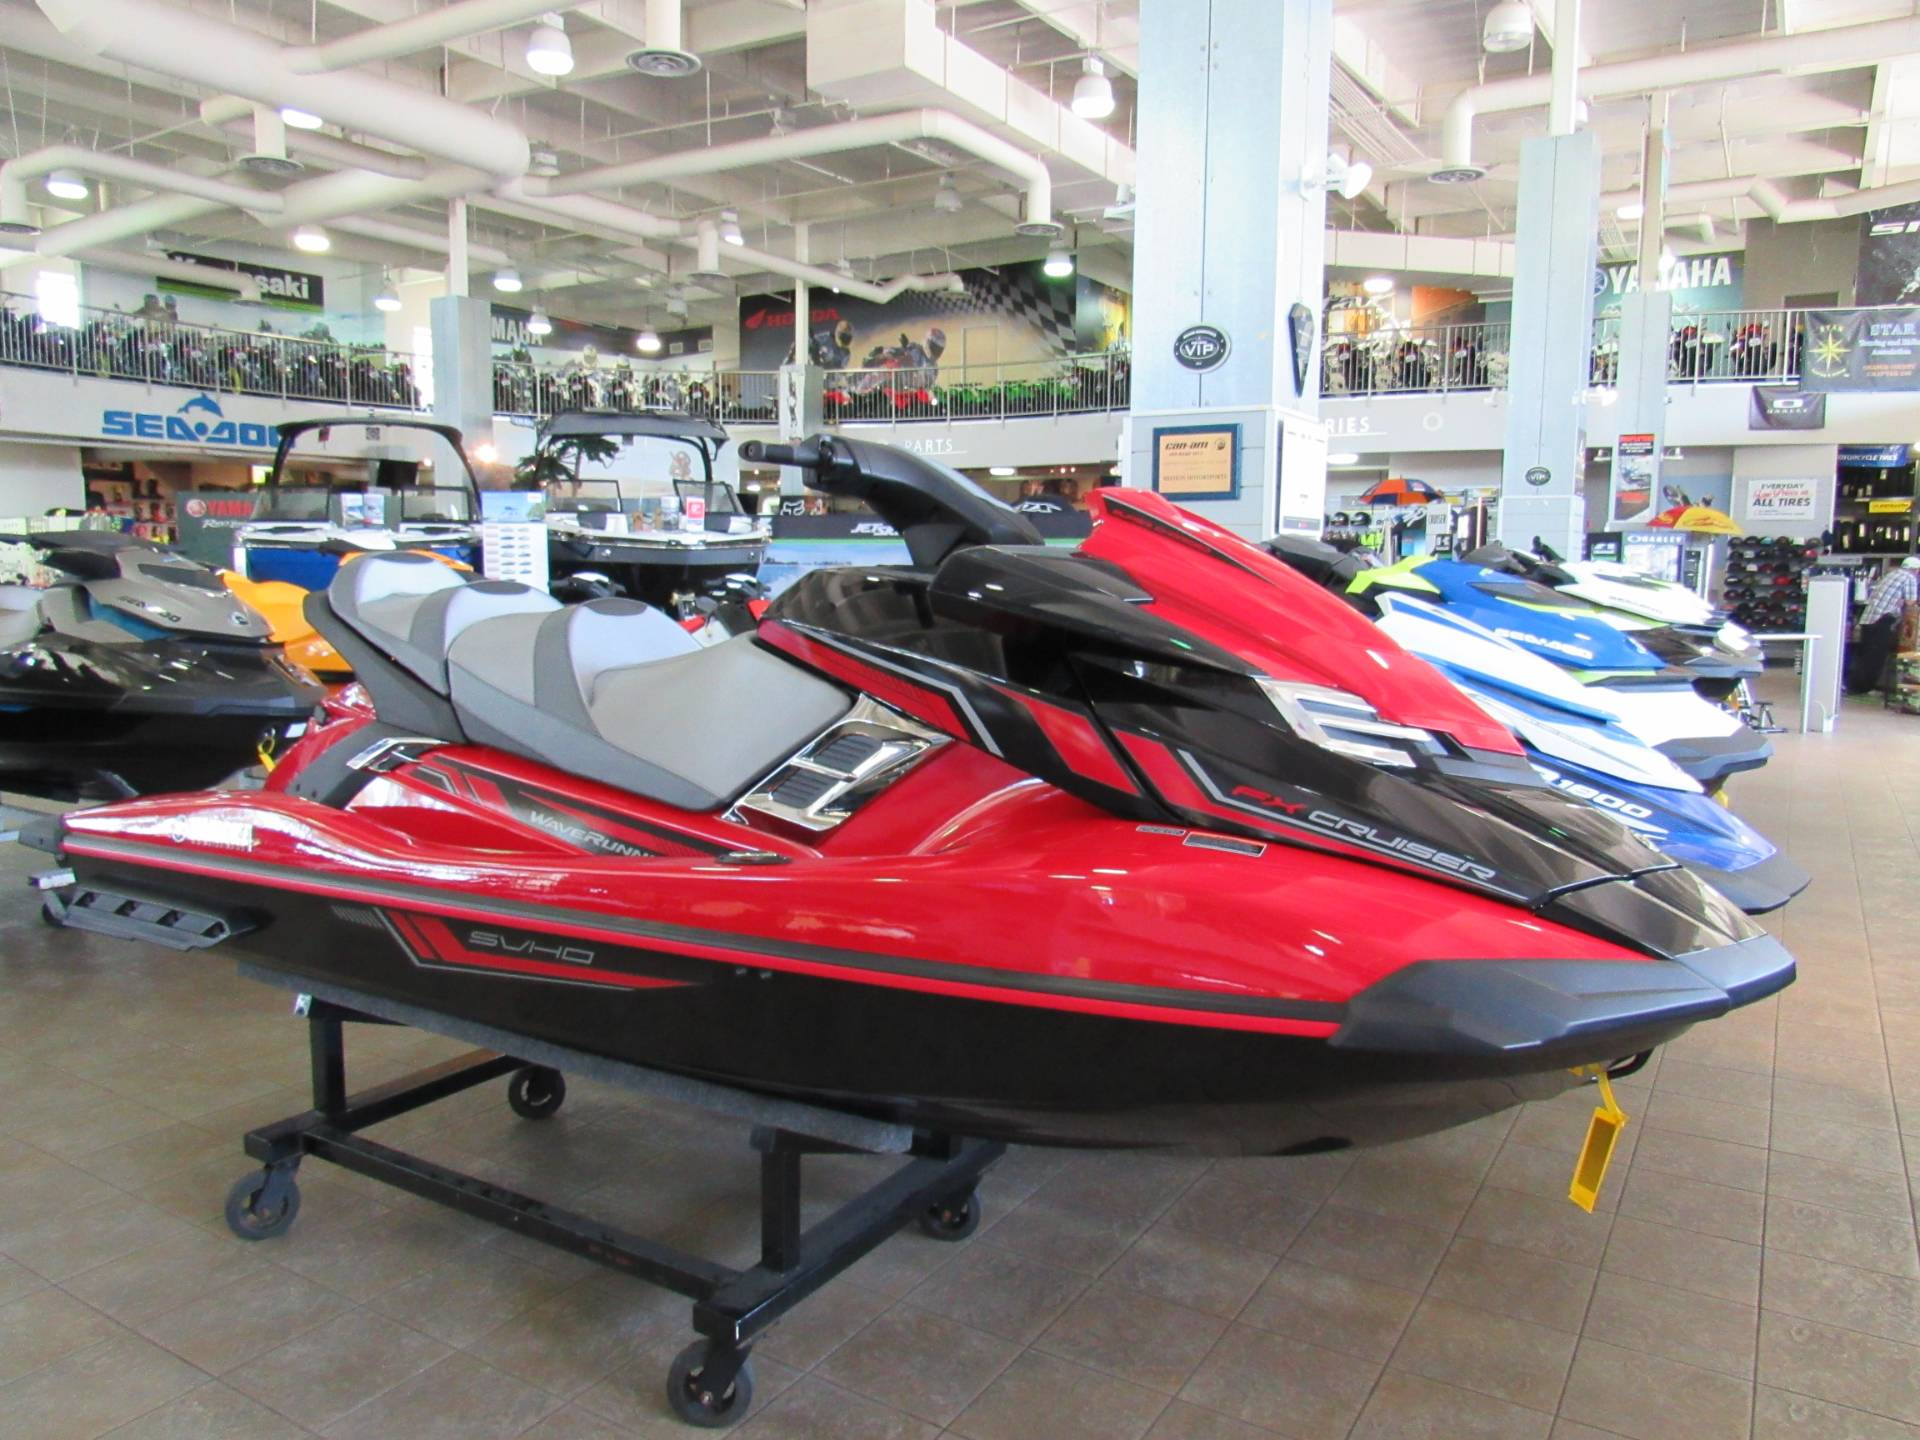 2017 Yamaha FX Cruiser SVHO for sale 3833